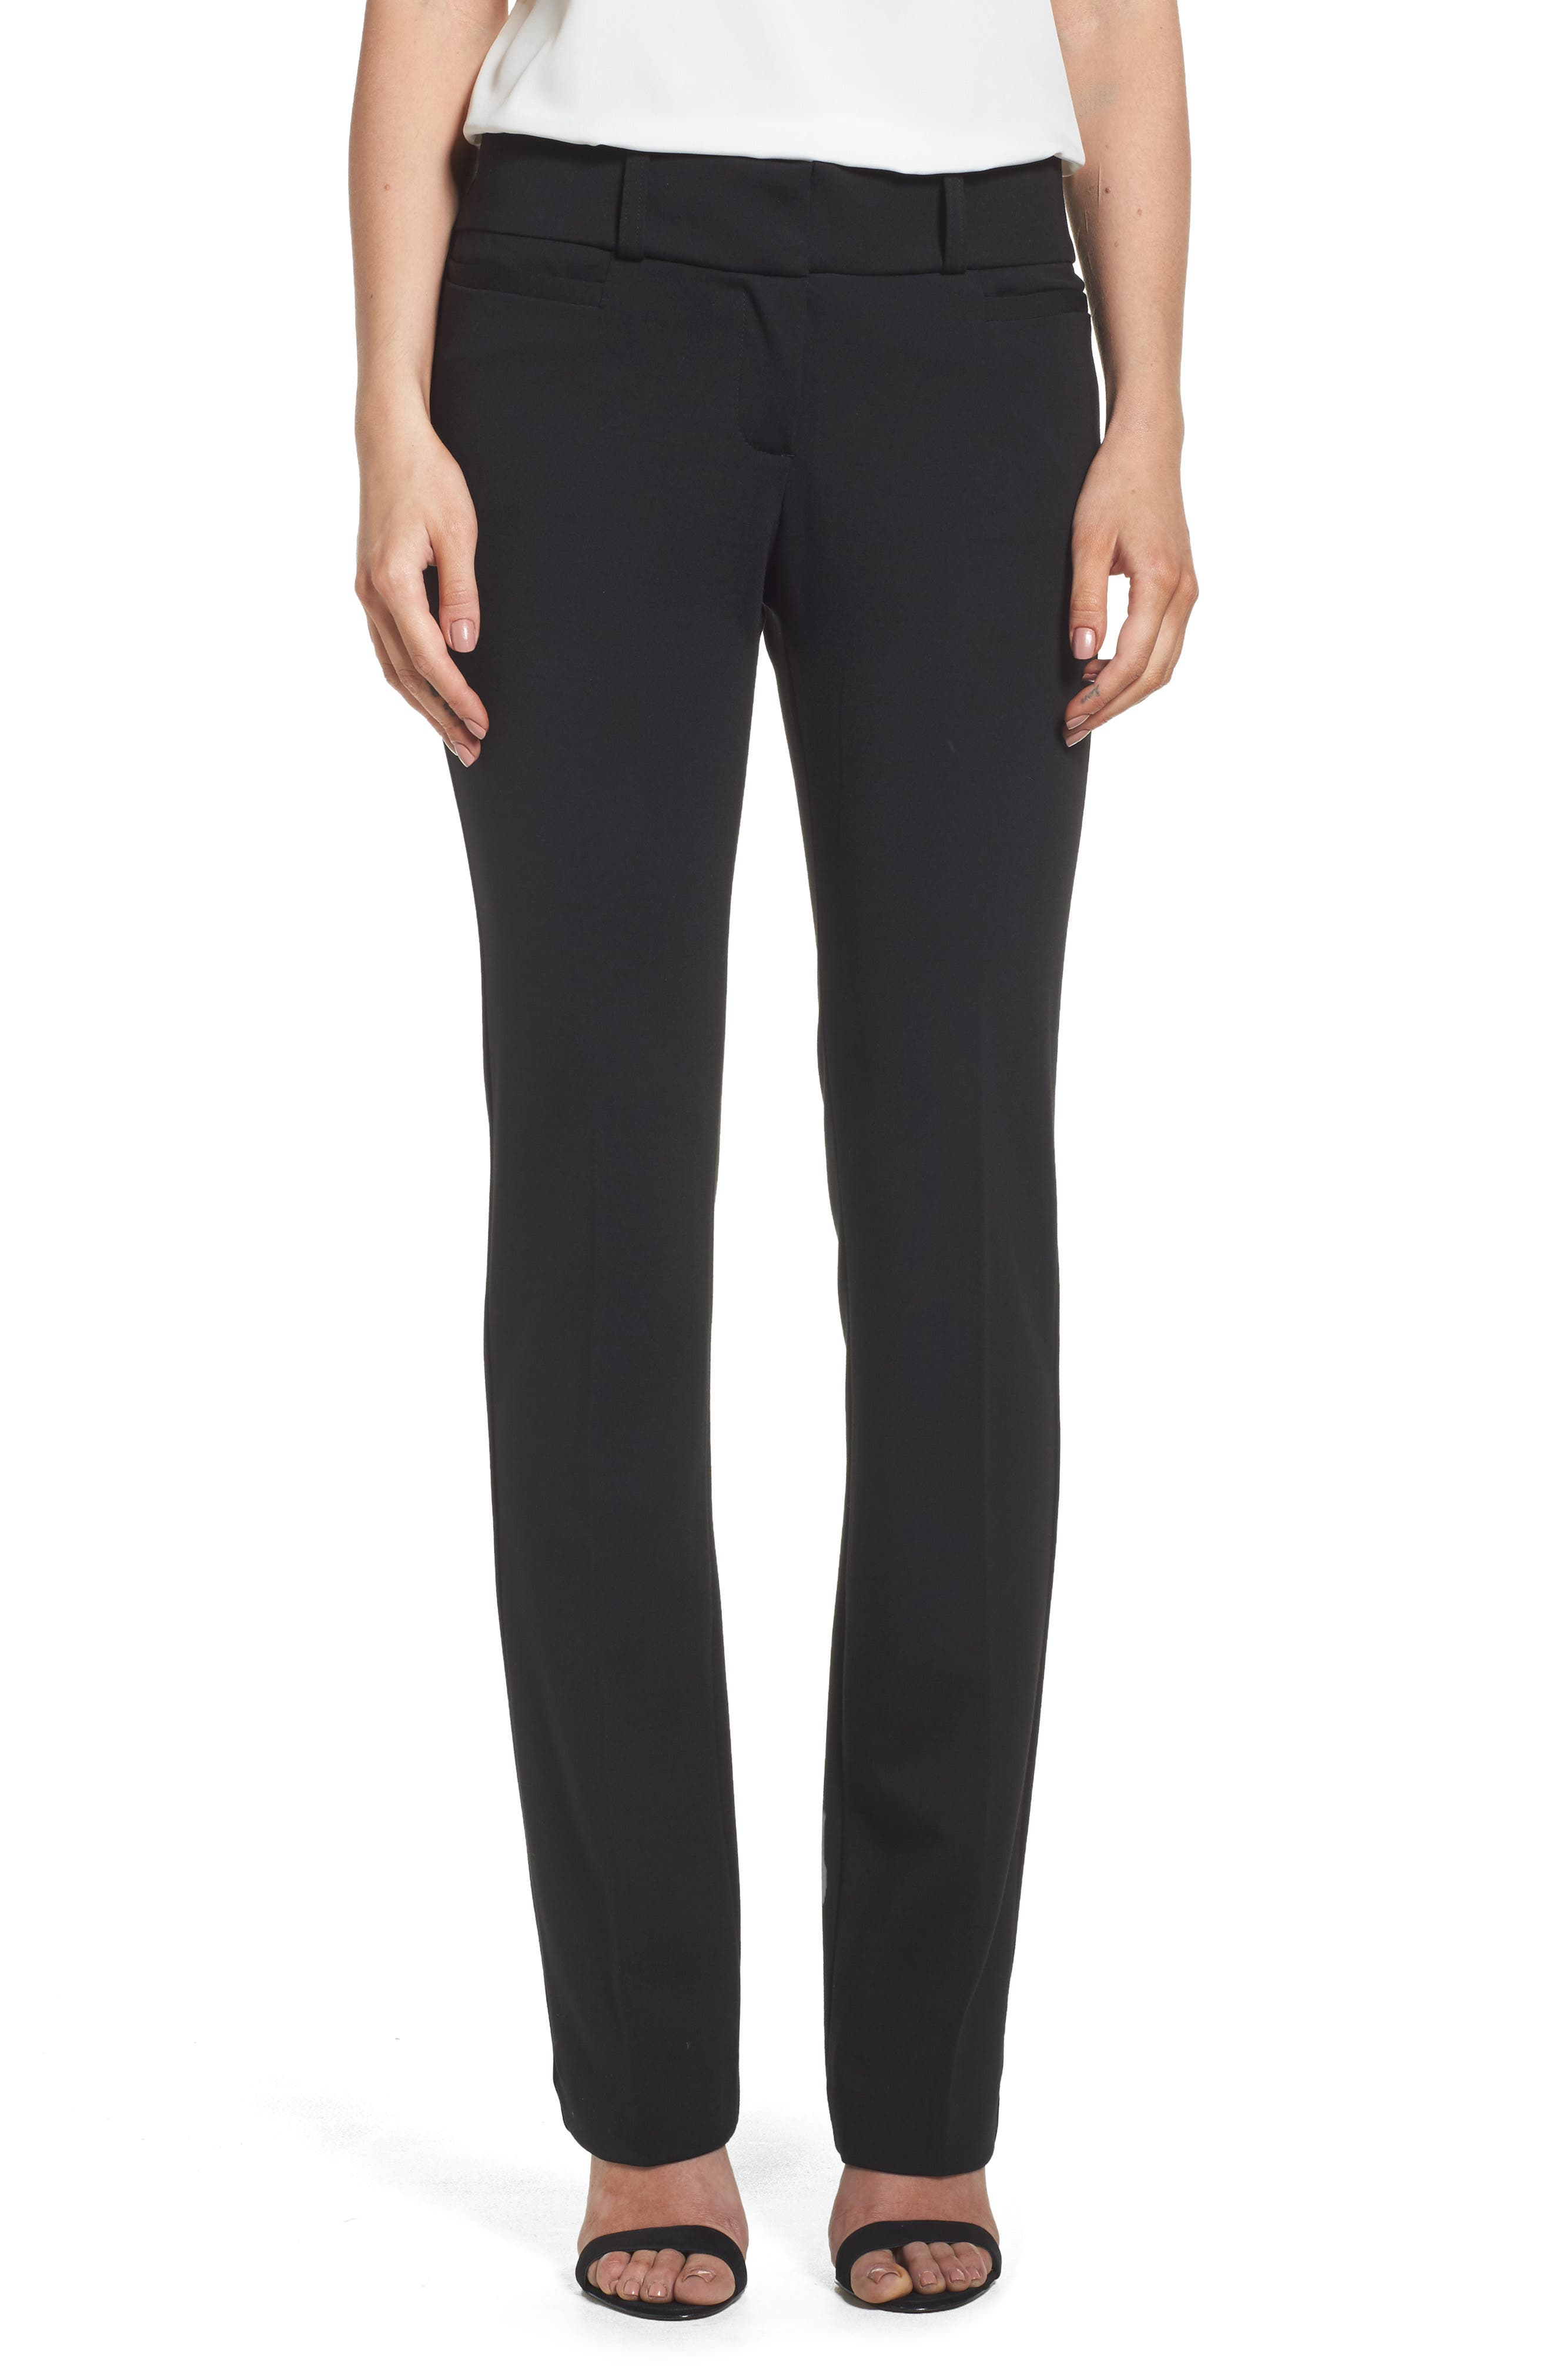 Main Image - Sentimental NY Jane Brown Trousers